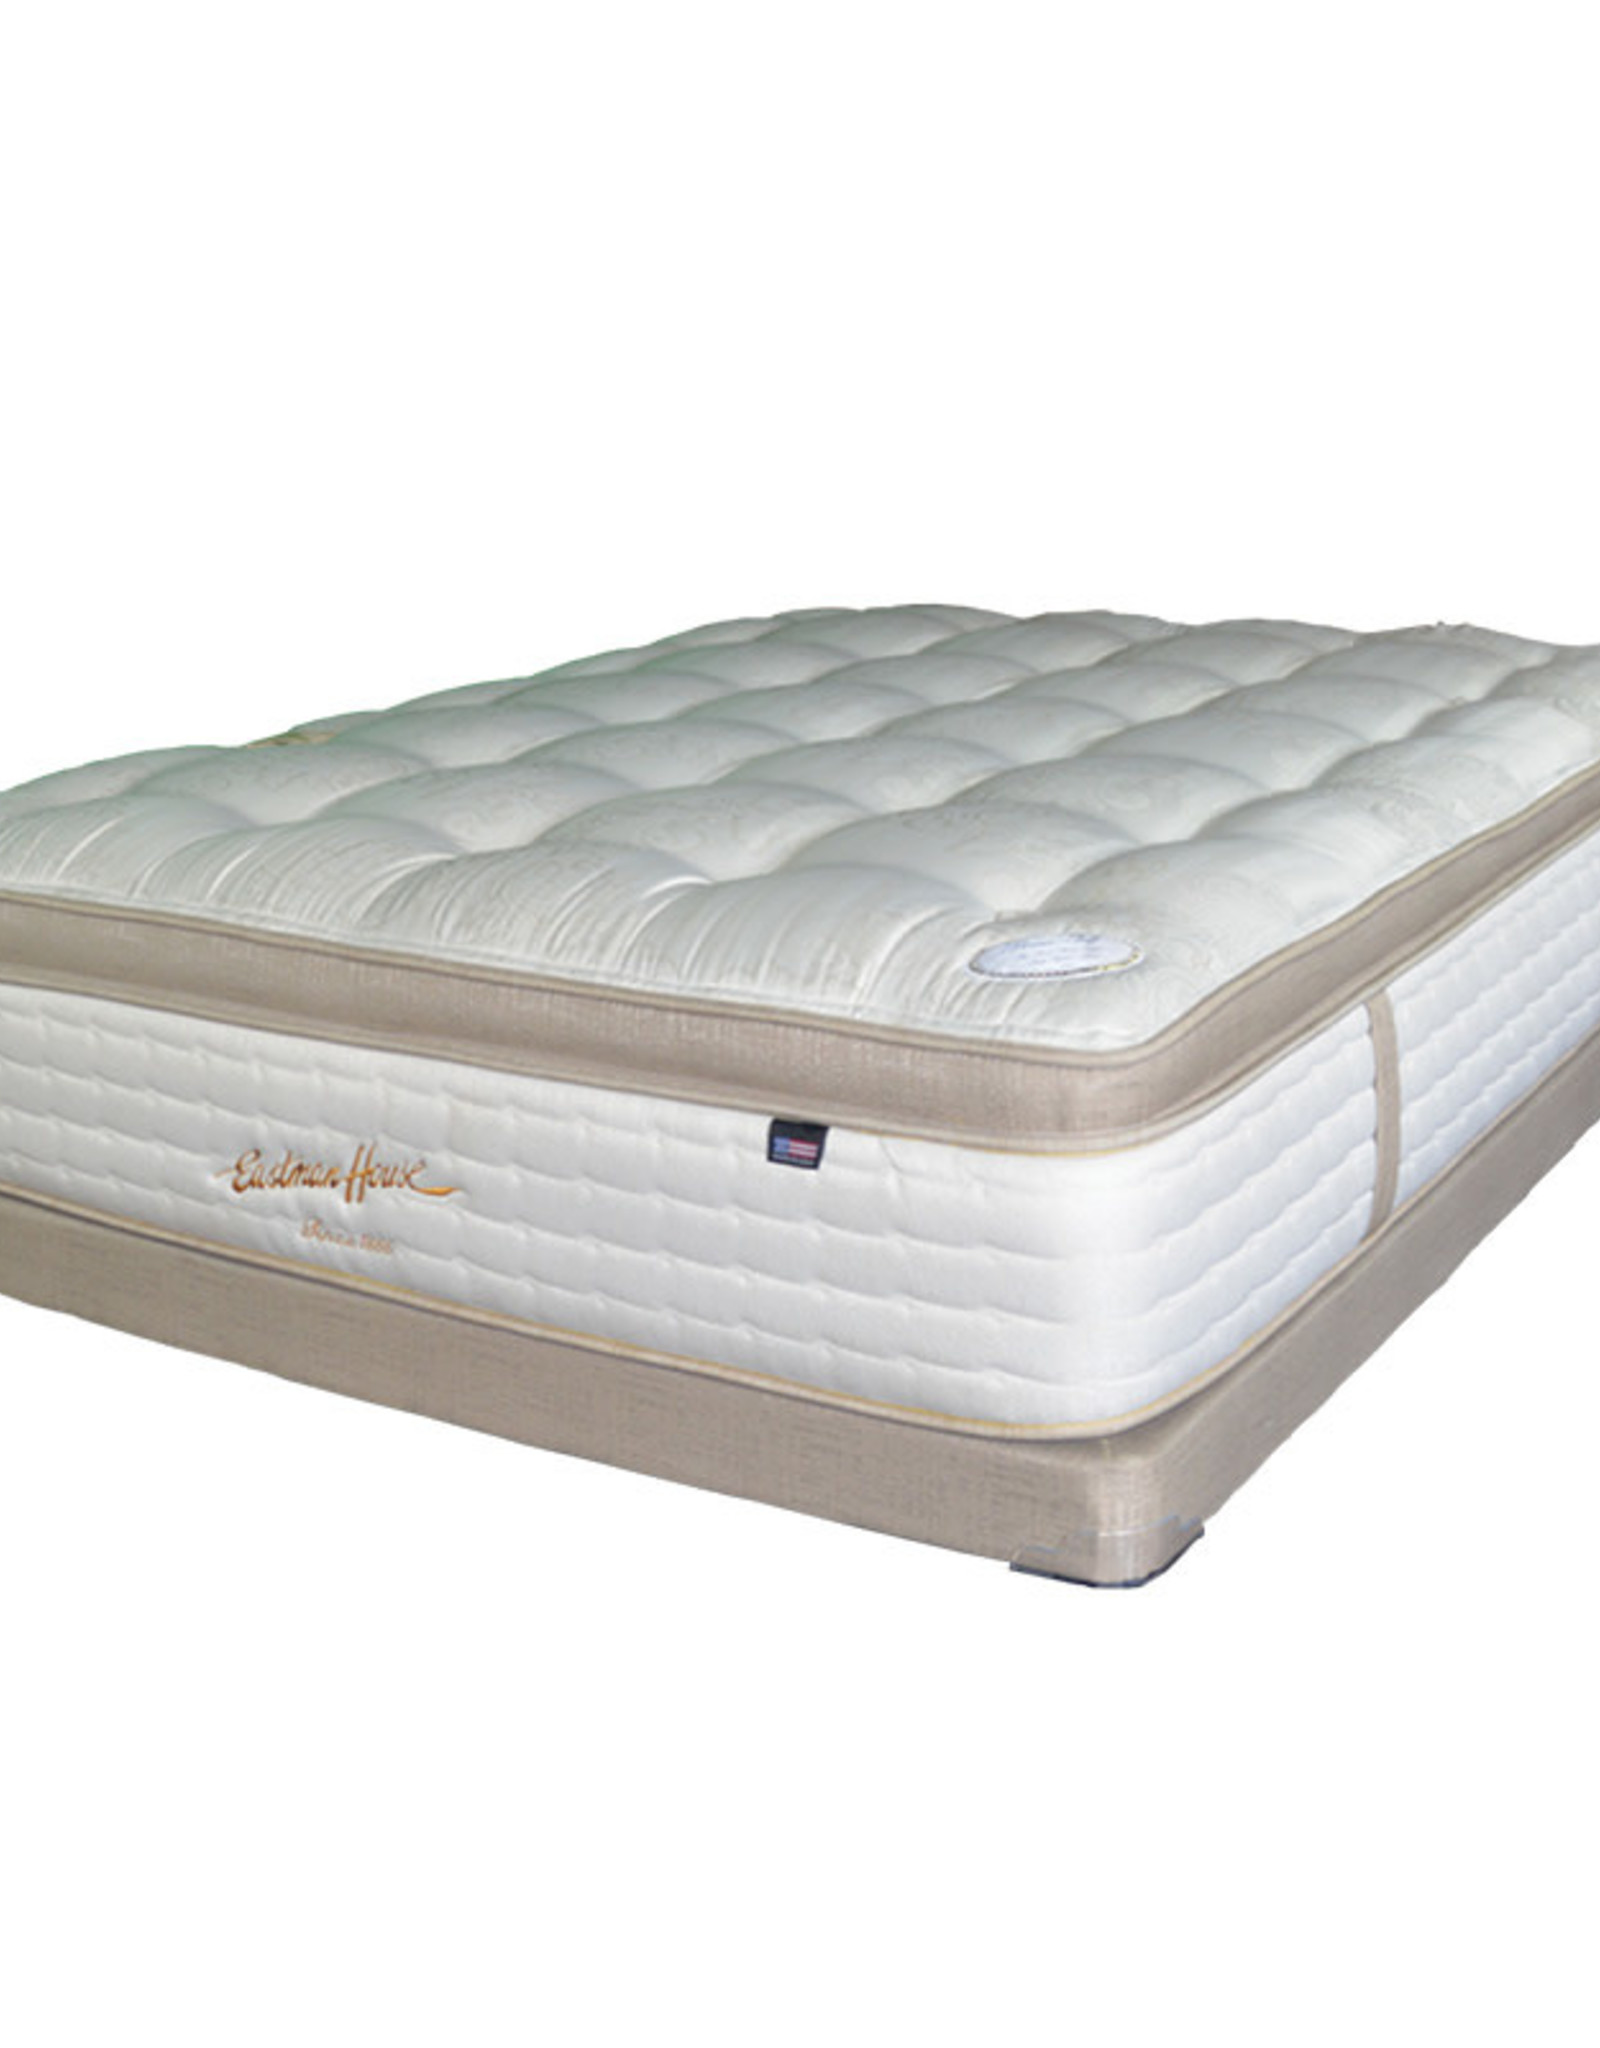 Luxury Pillow Top Mattress